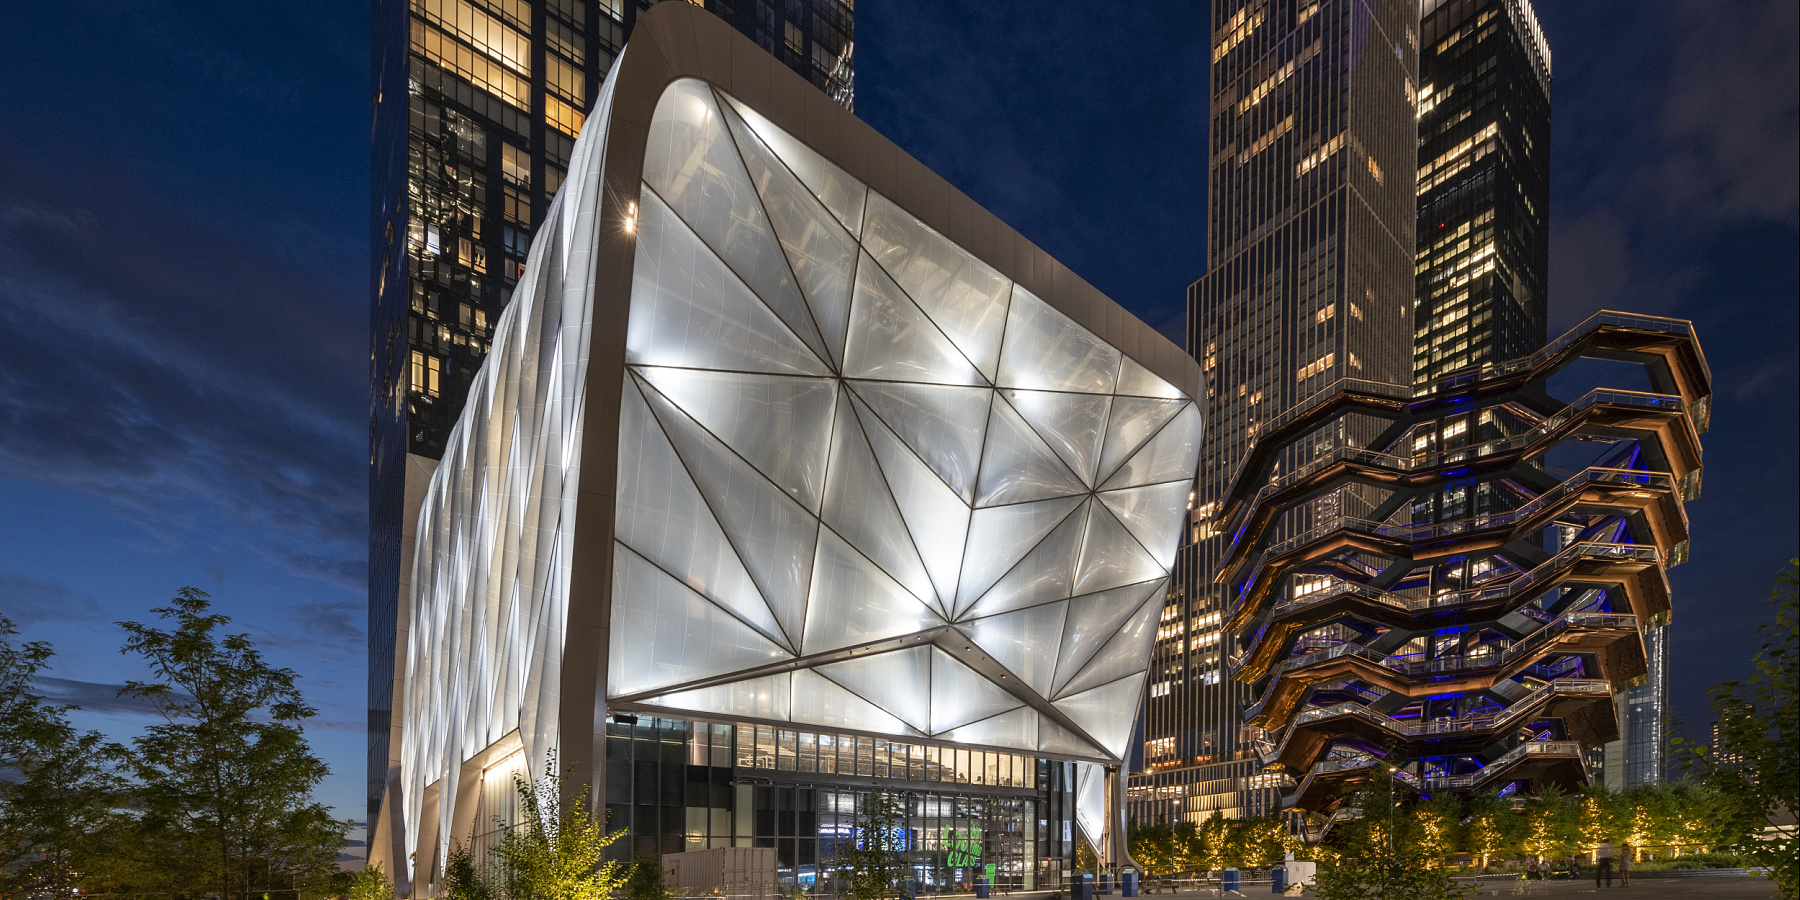 The Shed/Hudson Yards, New York City / ERCO, Nueva York, Hudson Yards, Estados Unidos